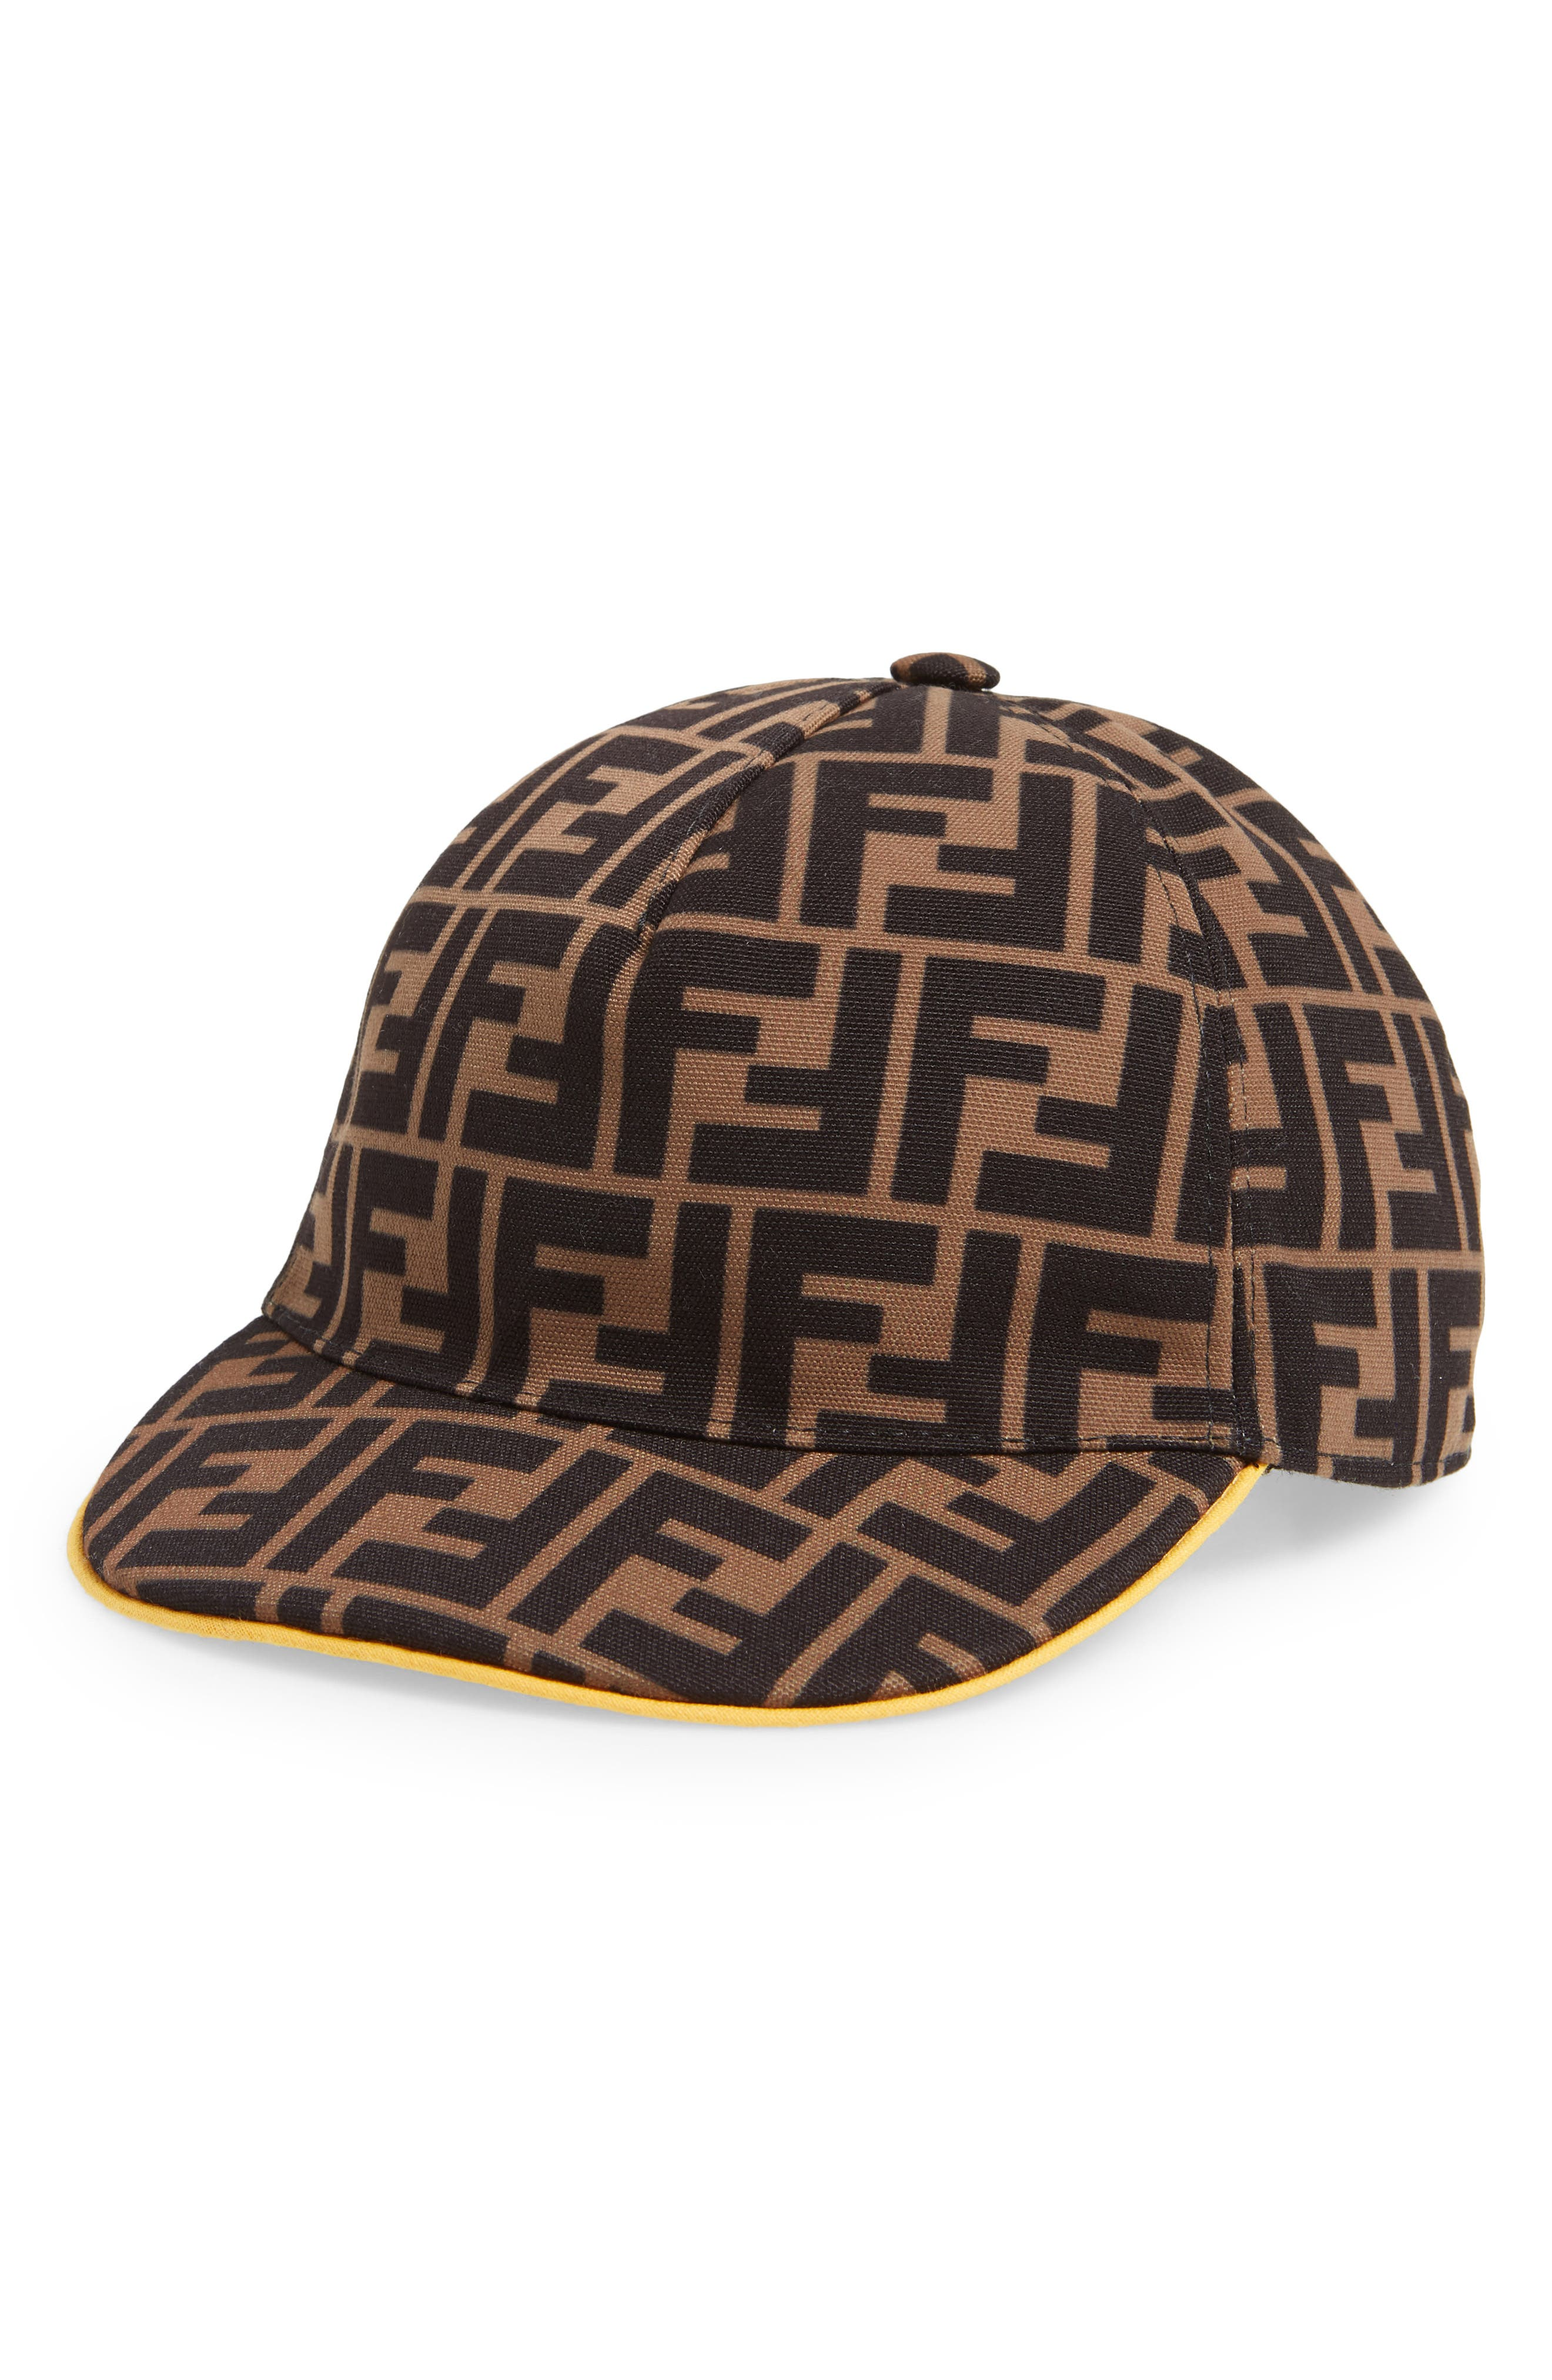 Toddler Fendi Logo Print Cap  Brown